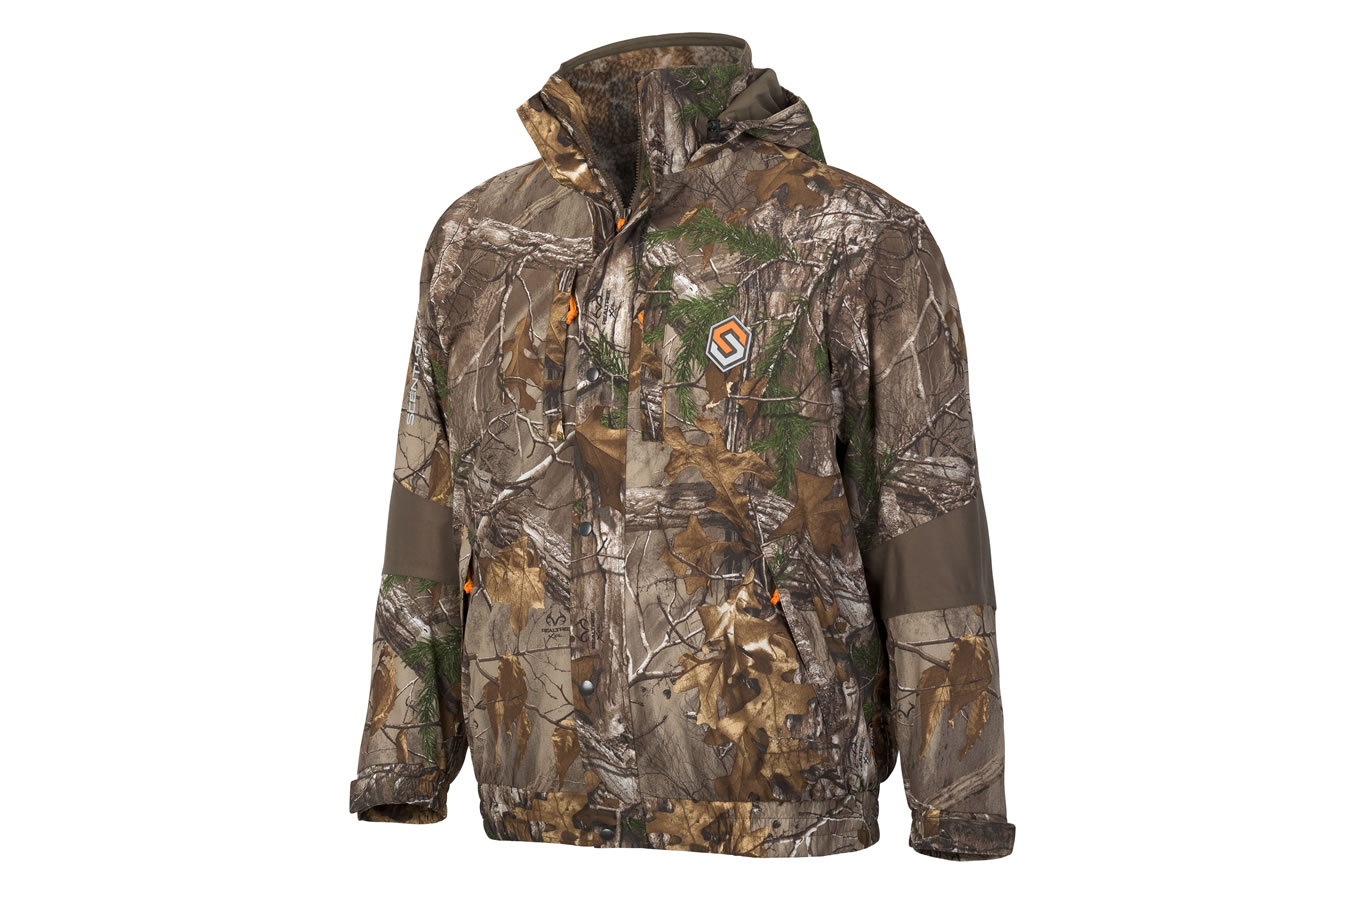 9111d518ca621 Scentlok Cold Blooded Jacket | Vance Outdoors